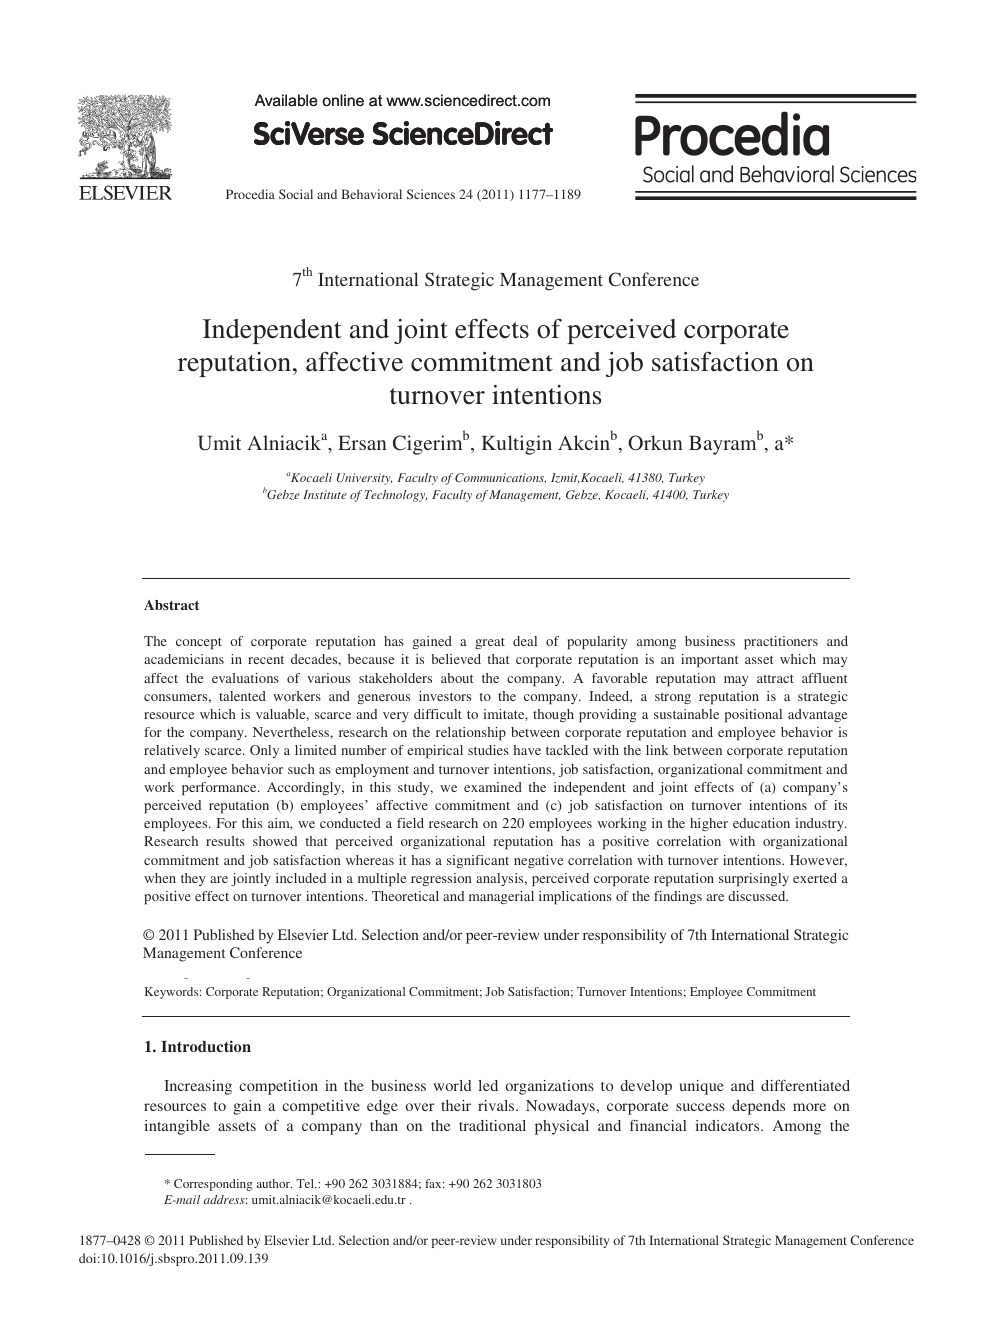 Independent and joint effects of perceived corporate reputation